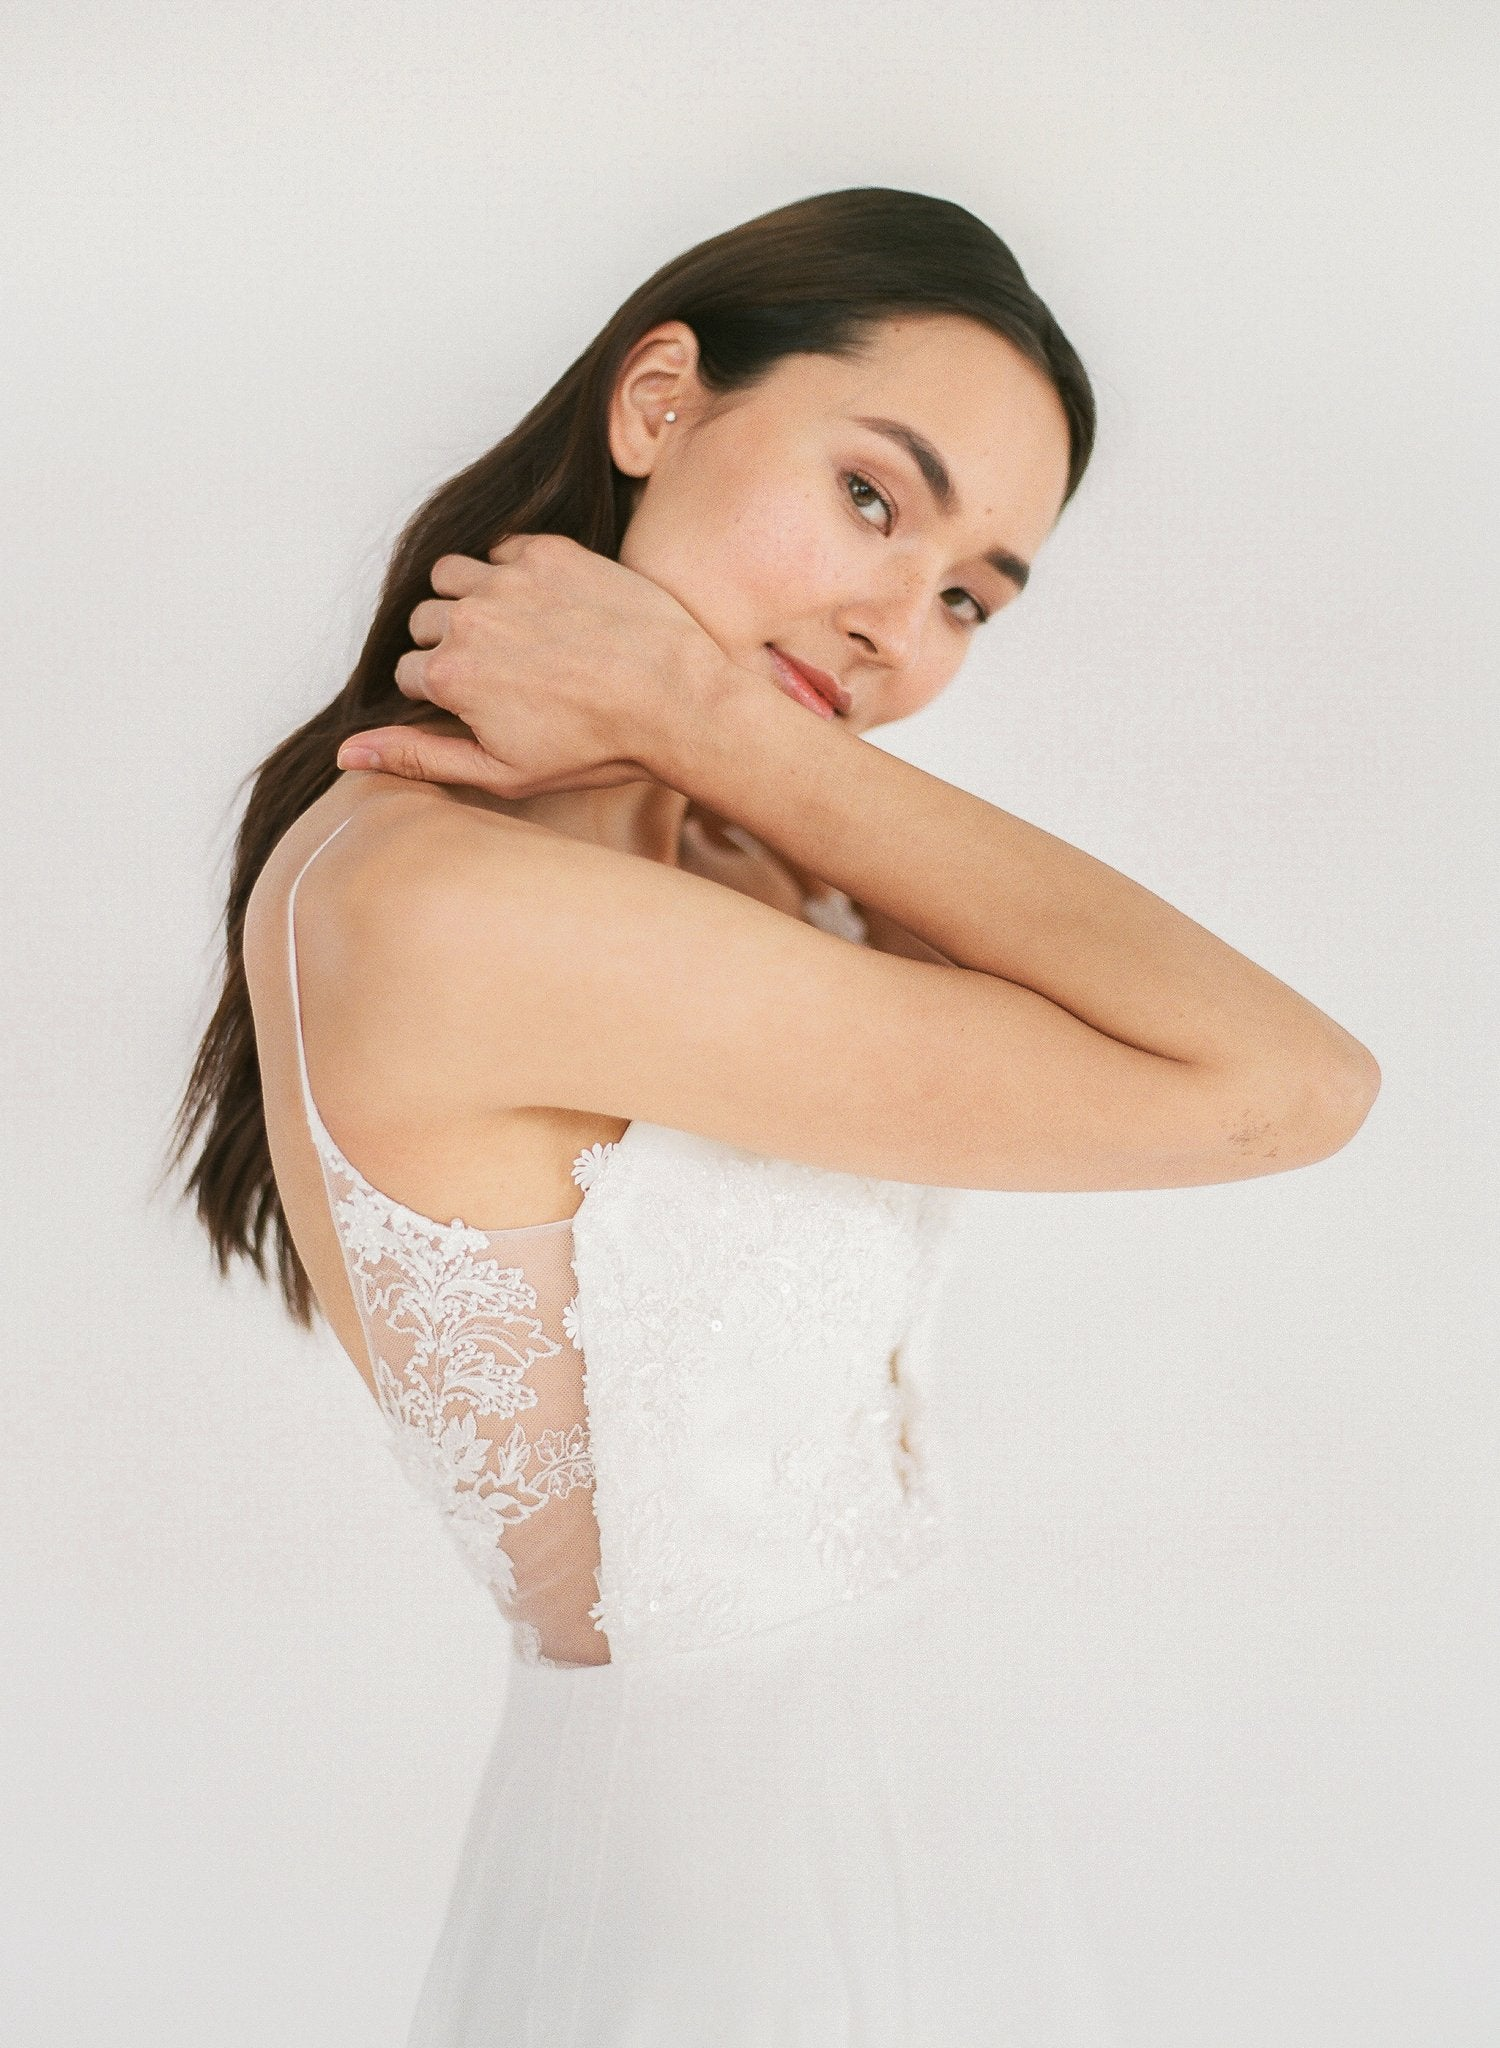 Ethically made flowy beach wedding dress with lace appliqué, a low back, and plunging neckline